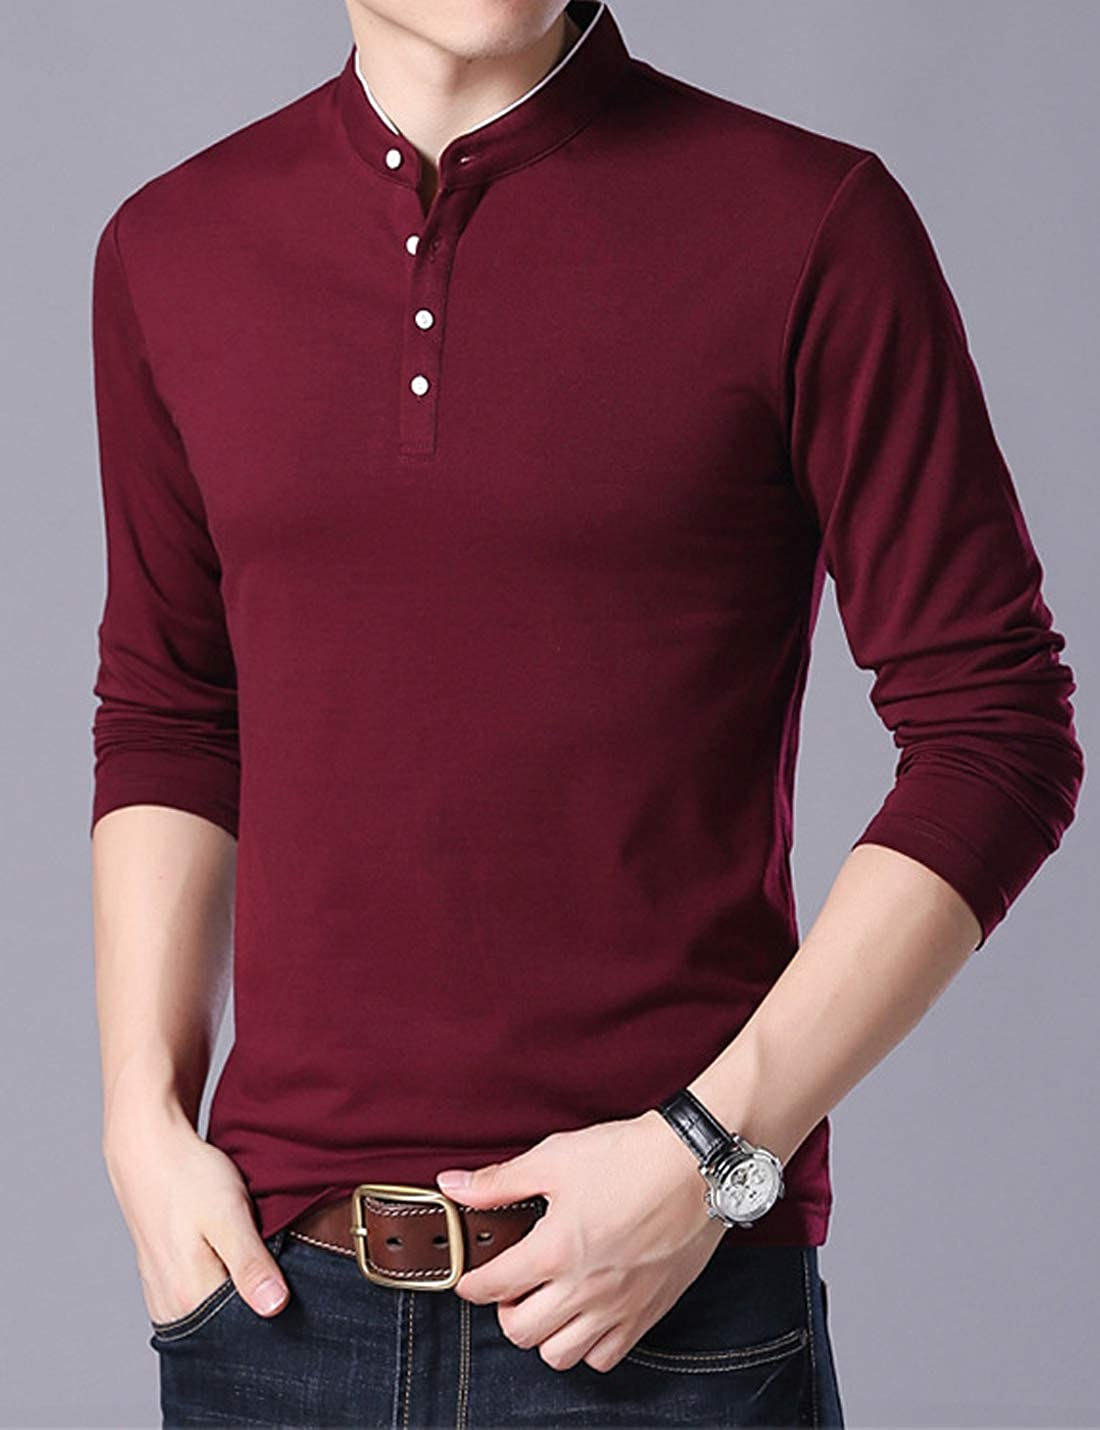 Jenkoon Mens Casual Slim Fit Long Sleeve Henley T-Shirts Polo Cotton T-Shirts